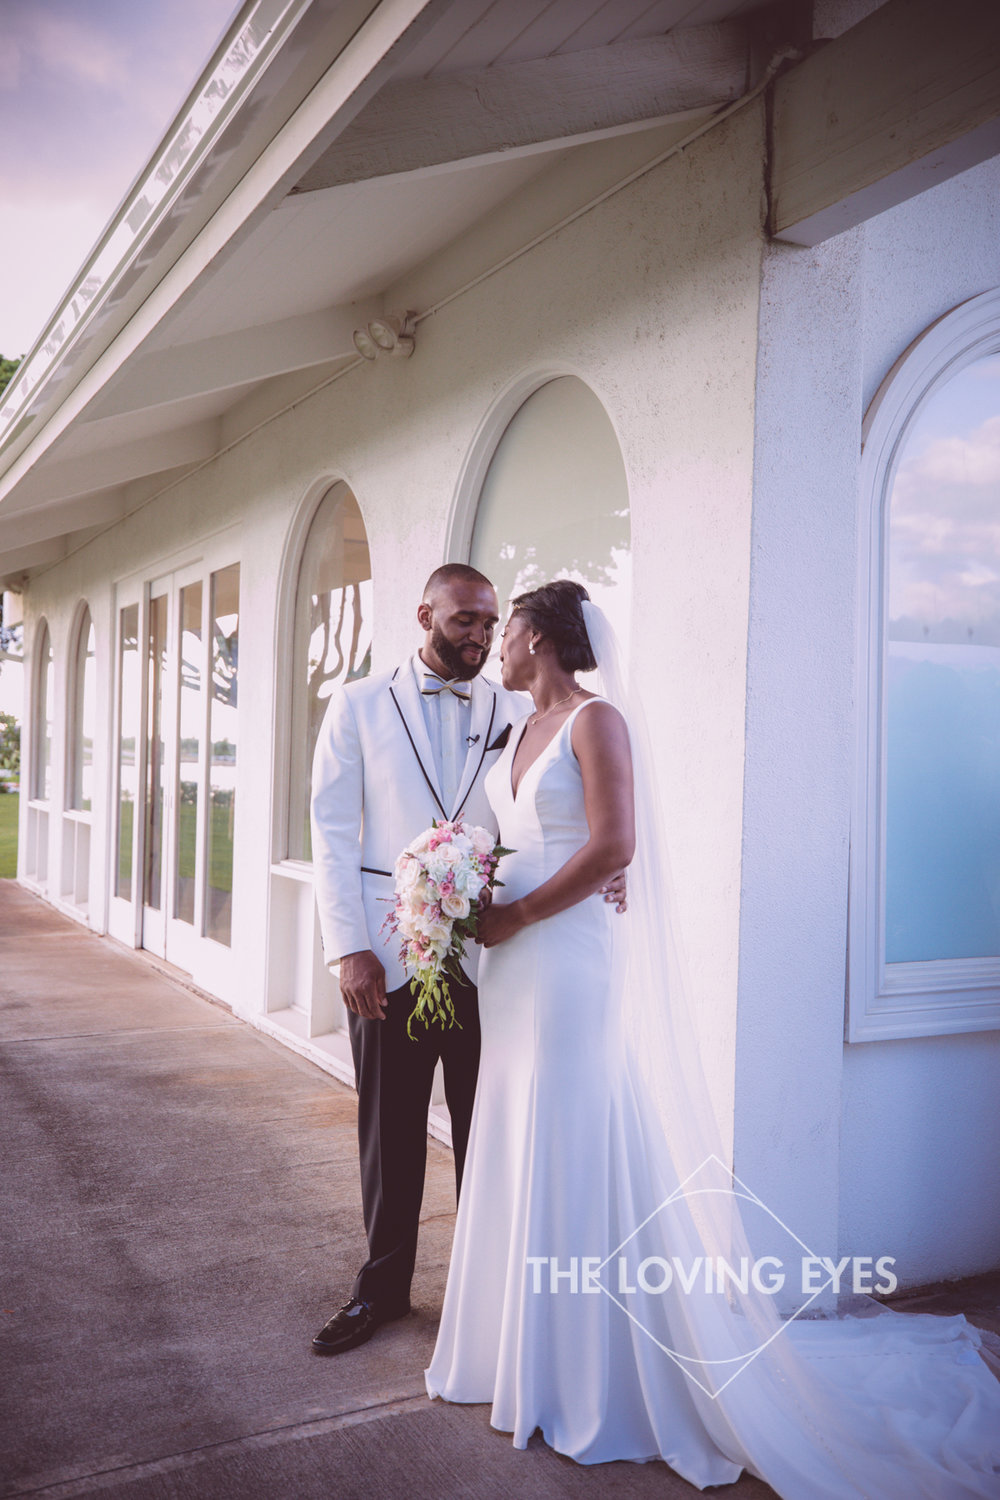 Bride and groom on their wedding day at the Hanalani Chapel in Hawaii